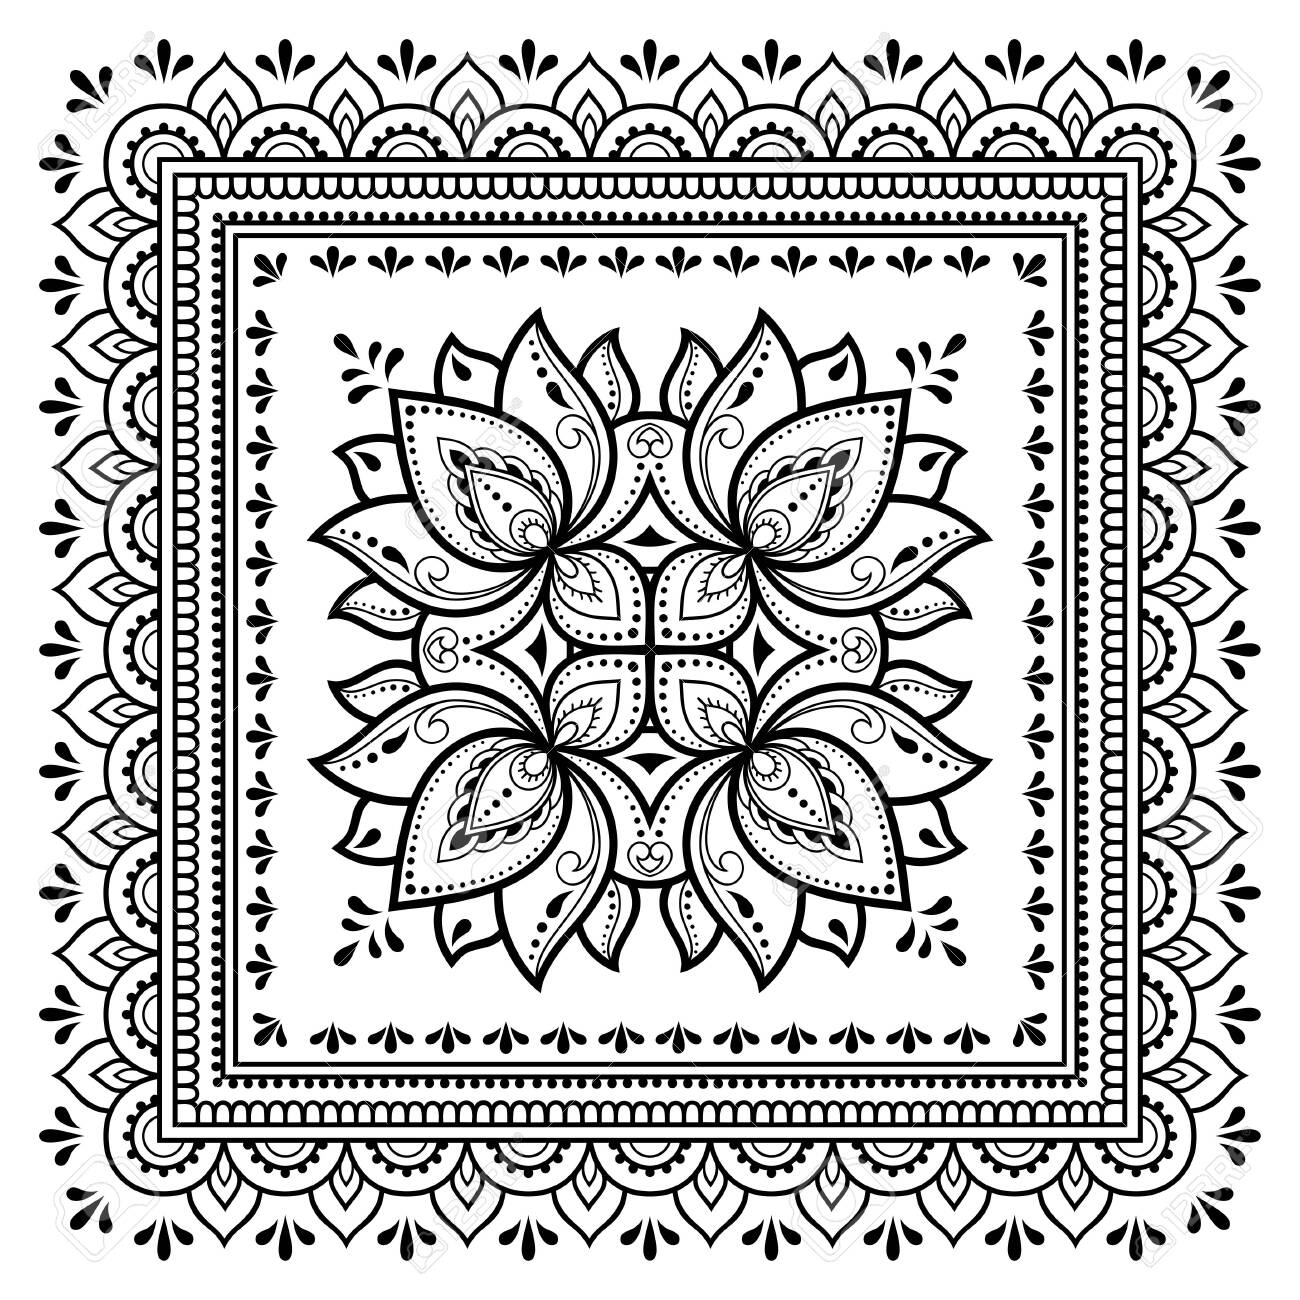 Square pattern in form of mandala with Lotus flower for Henna, Mehndi, tattoo, decoration. Decorative ornament in ethnic oriental style. Outline doodle hand draw vector illustration. - 129992487